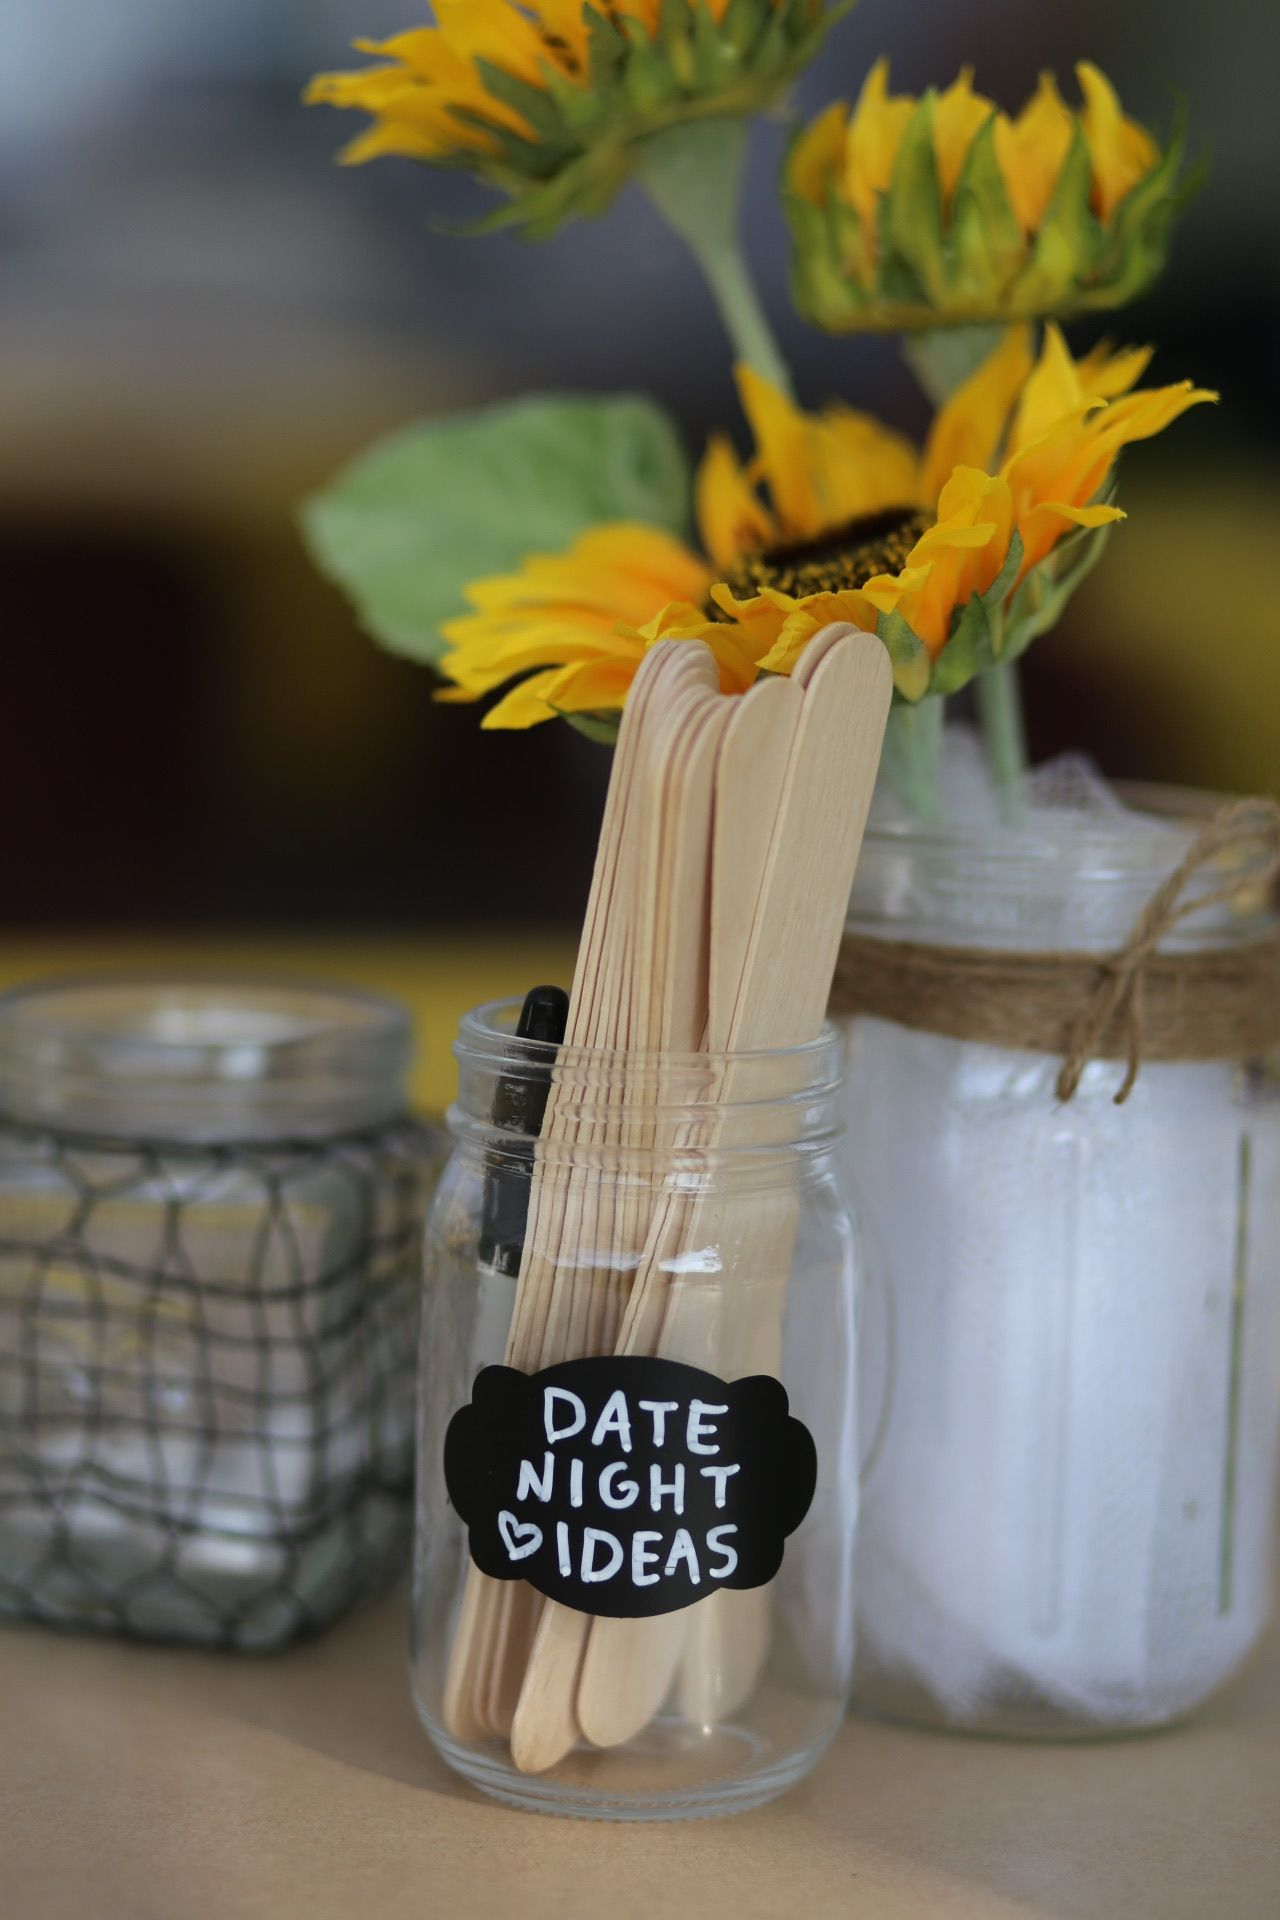 I Do Bbq Bbq Themed Couples Shower Have Your Guests Write Date Night Ideas On Popsicle Sticks Centerpiece Ide I Do Bbq Couple Shower Minute To Win It Games